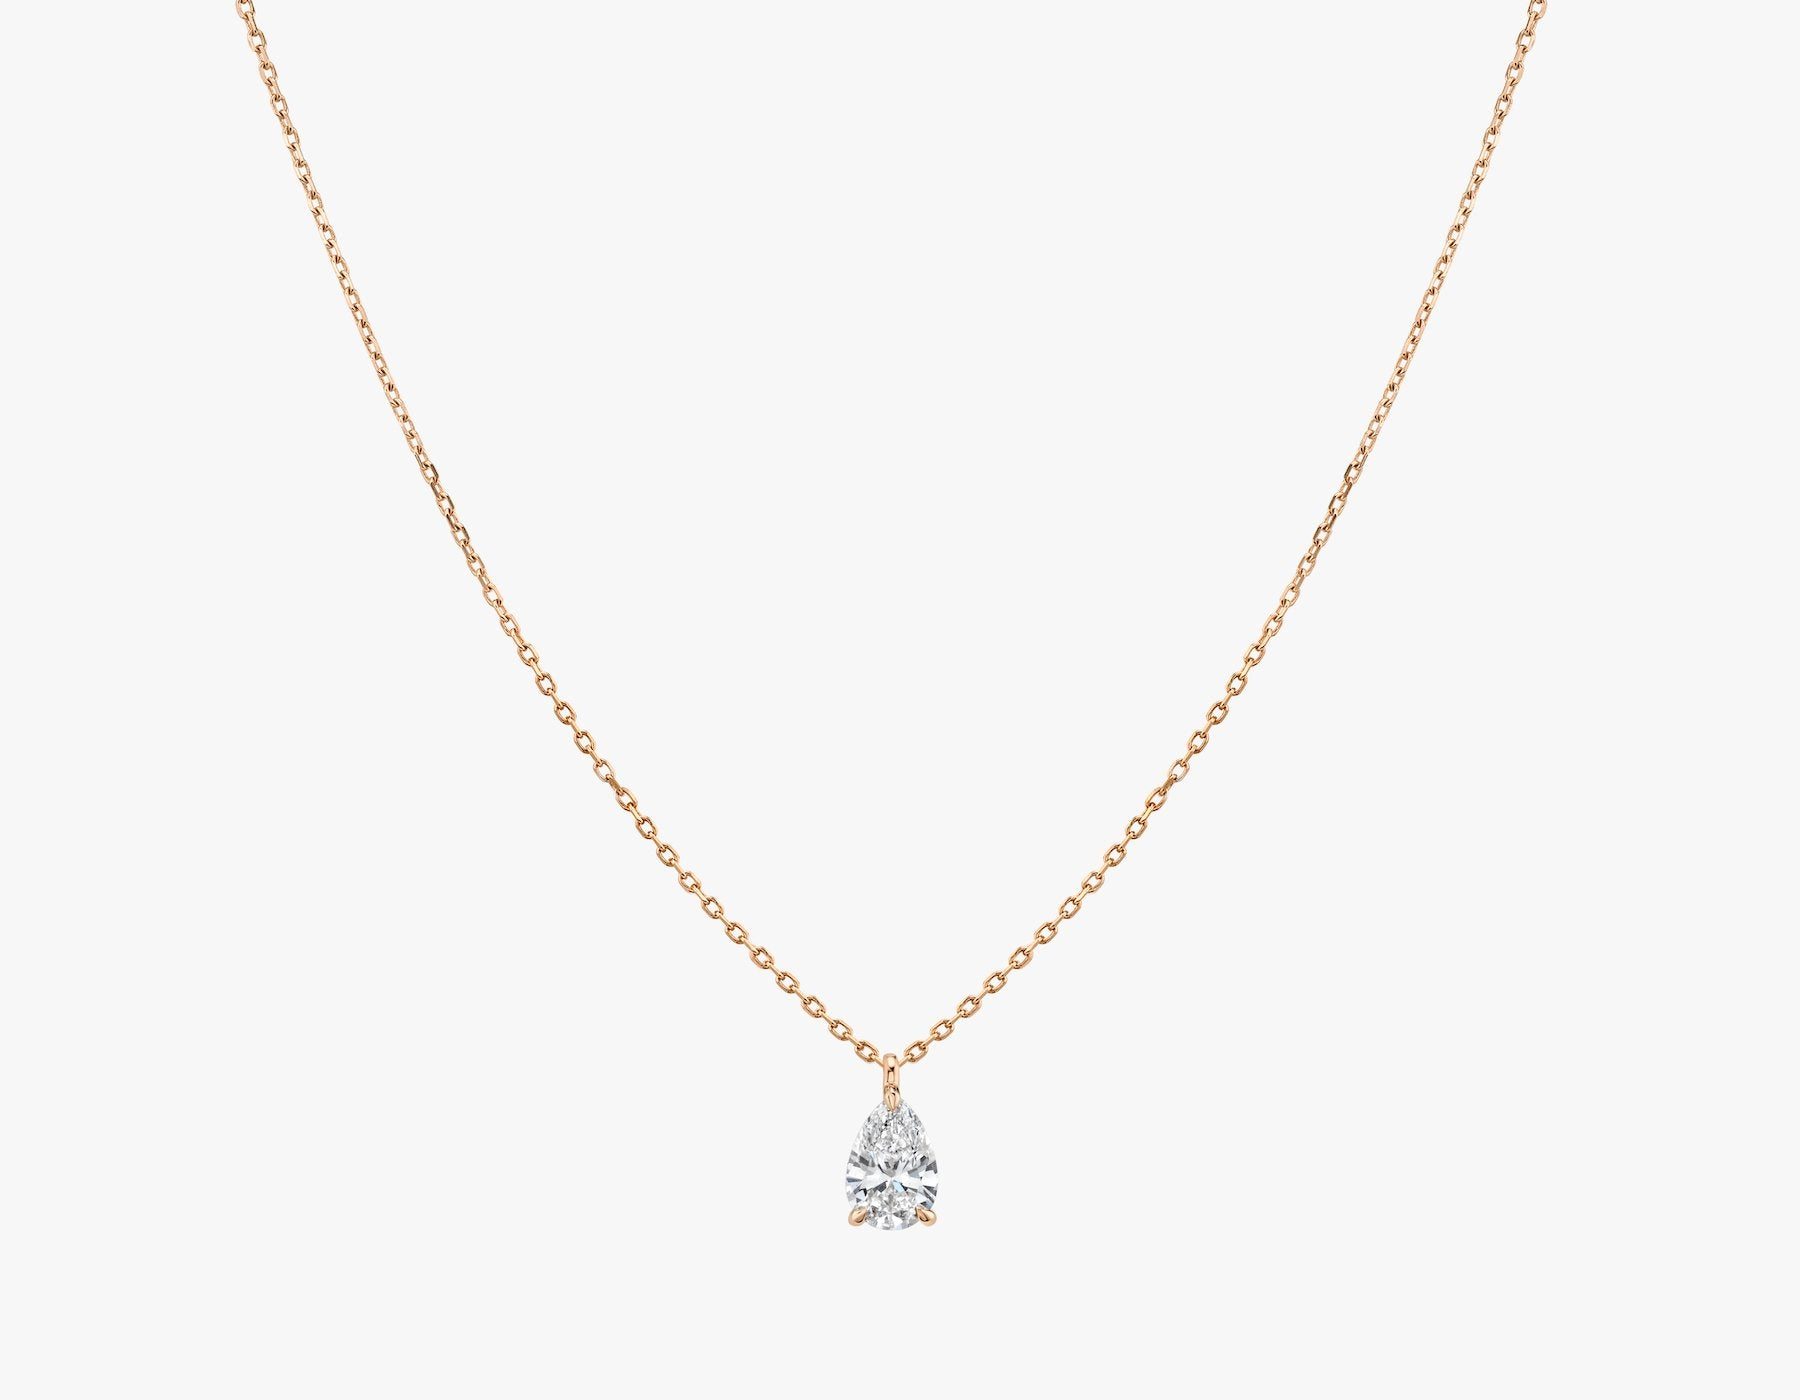 Vrai 14K solid gold solitaire pear diamond pendant necklace 1ct minimalist delicate, 14K Rose Gold